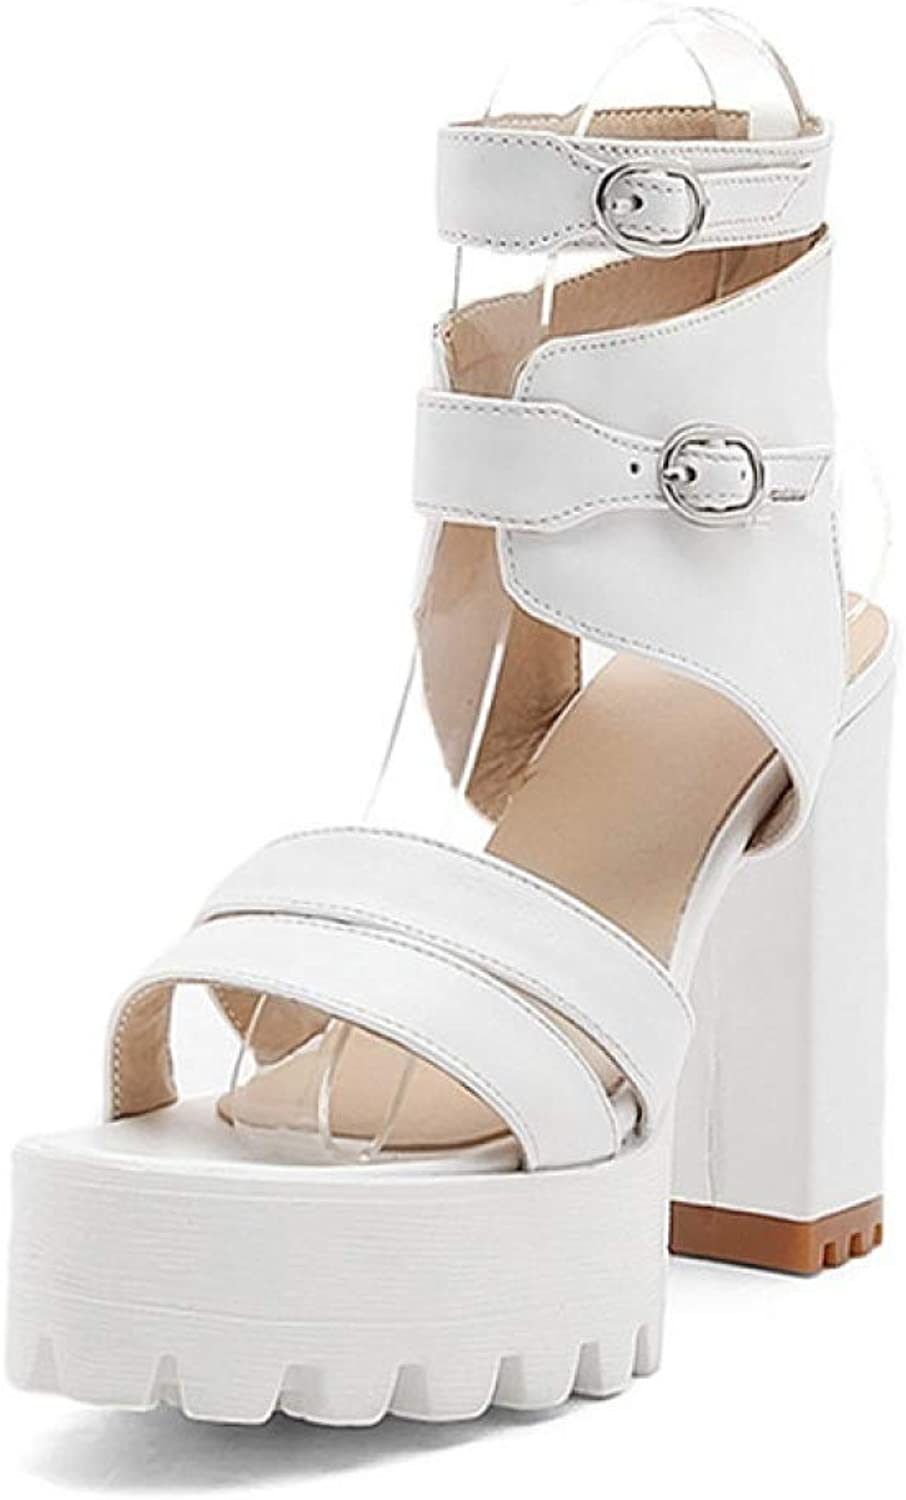 T-JULY Summer Gladiator Women Sandals Sexy High Heels Cut-Outs Female Sandals Open Toe Platform Ladies shoes